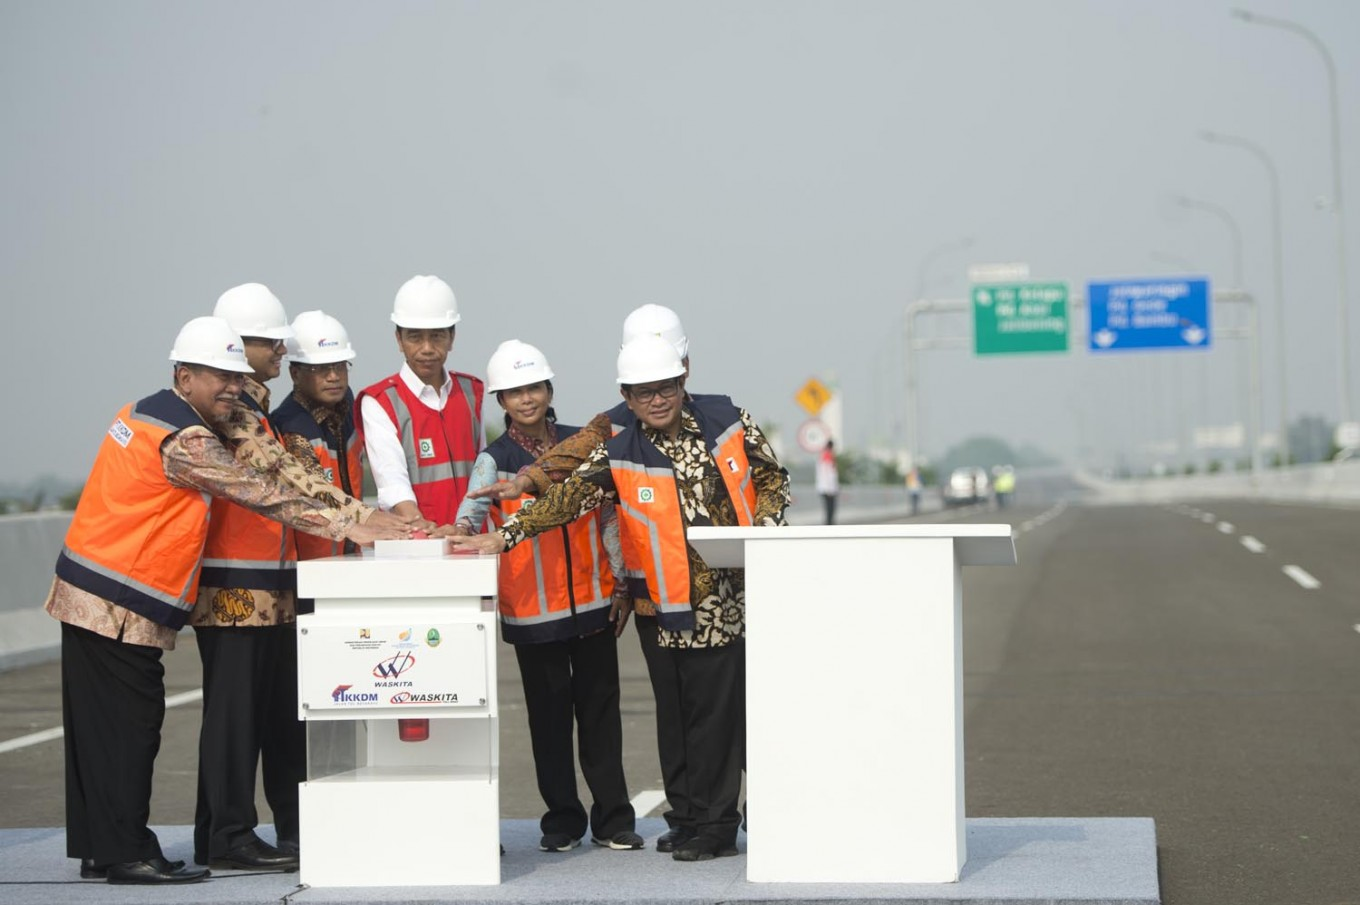 State construction firm Waskita Karya to divest Rp 4t worth of assets